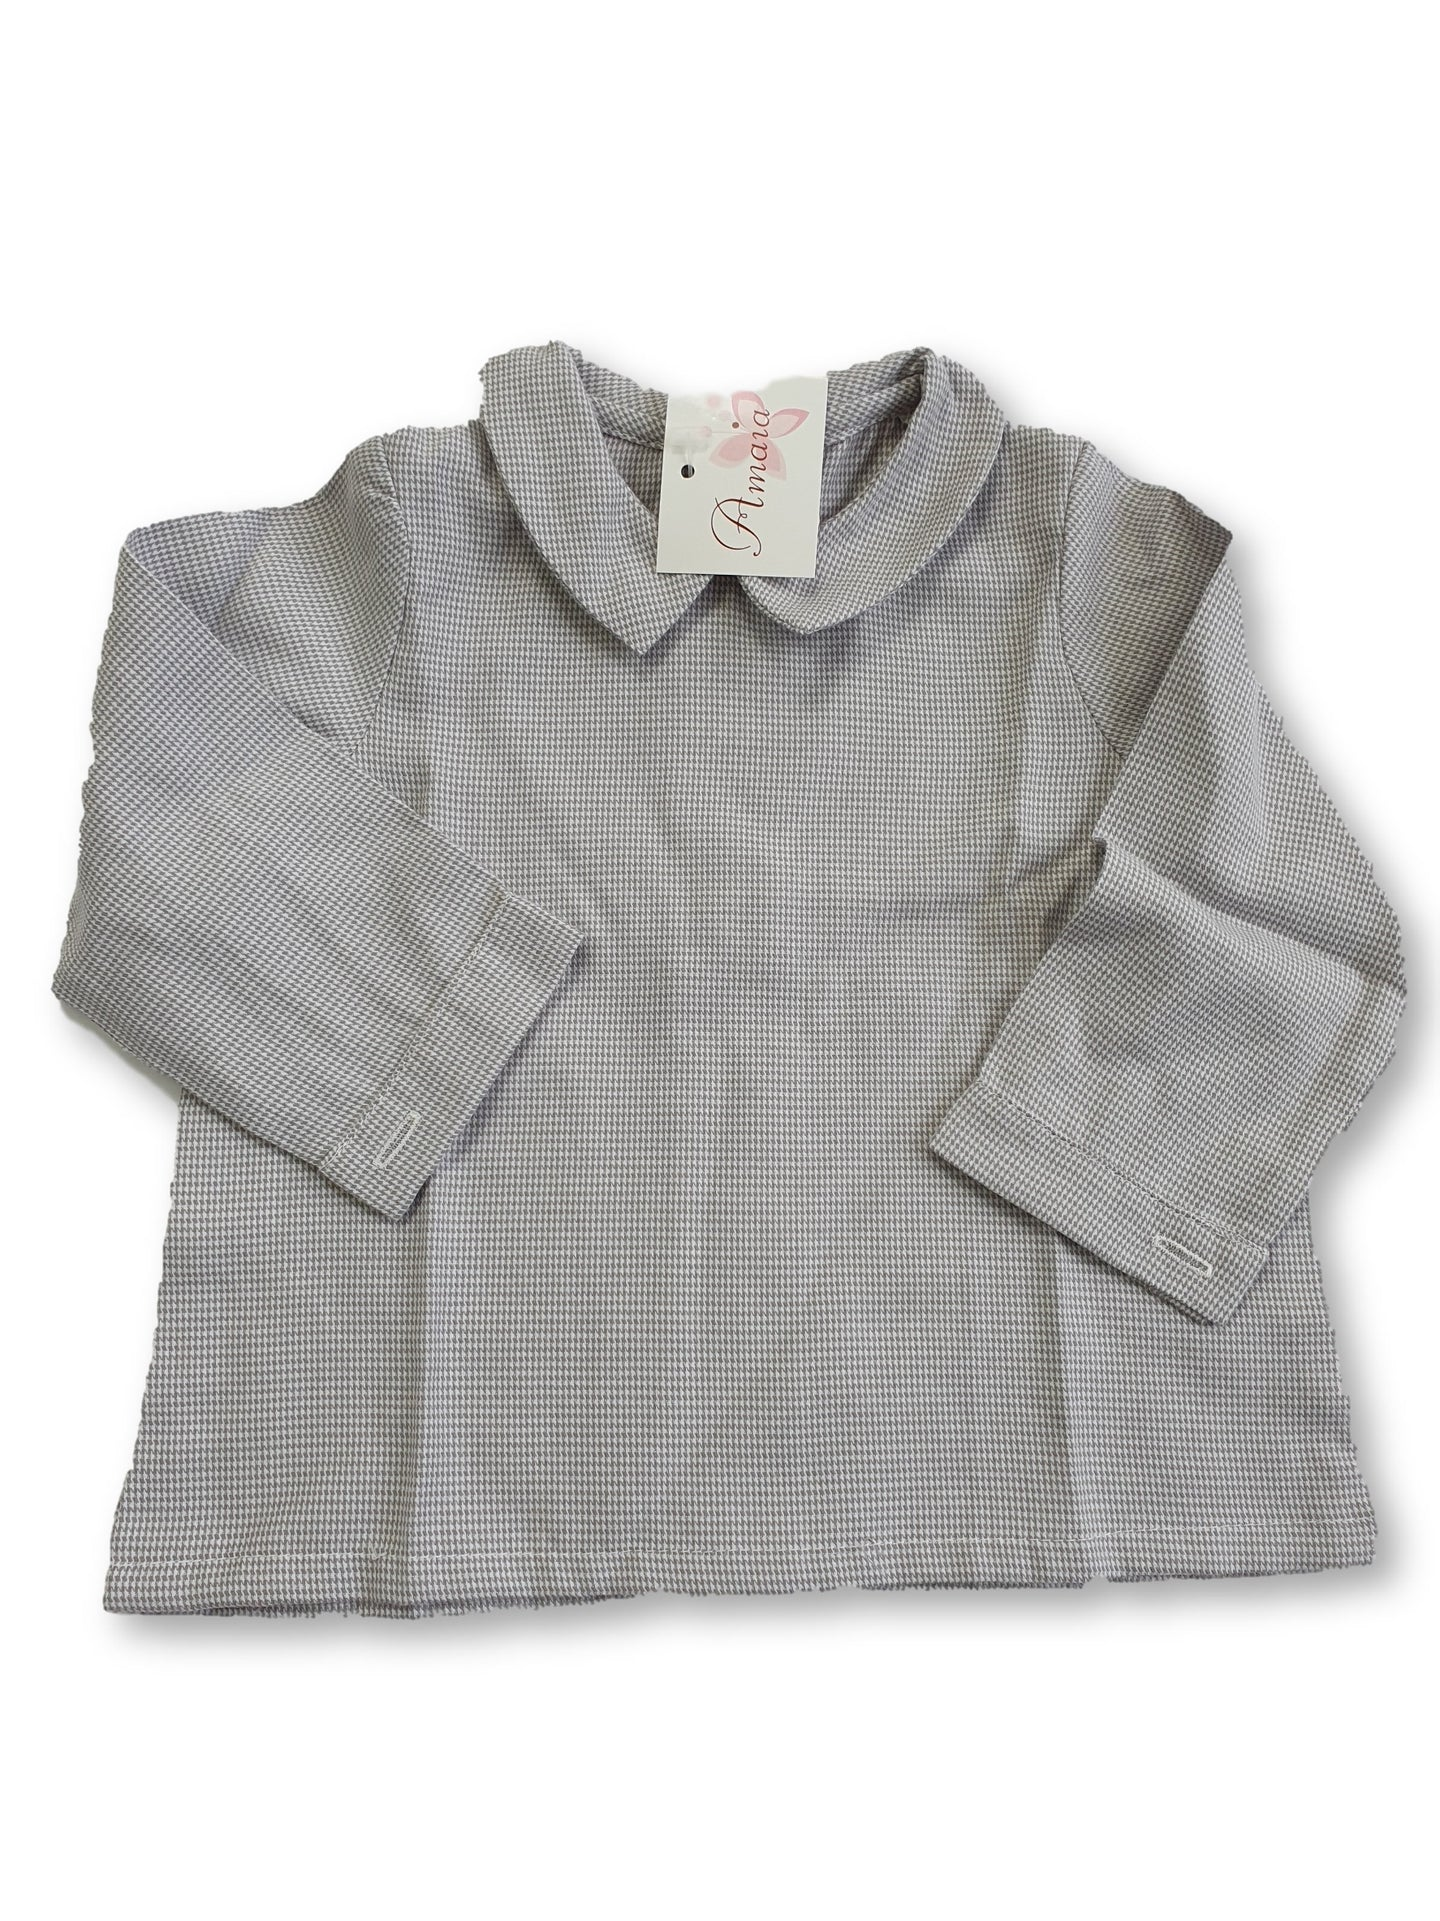 AMAIA outlet baby shirt 6m 12m - FAMILY AFFAIRE